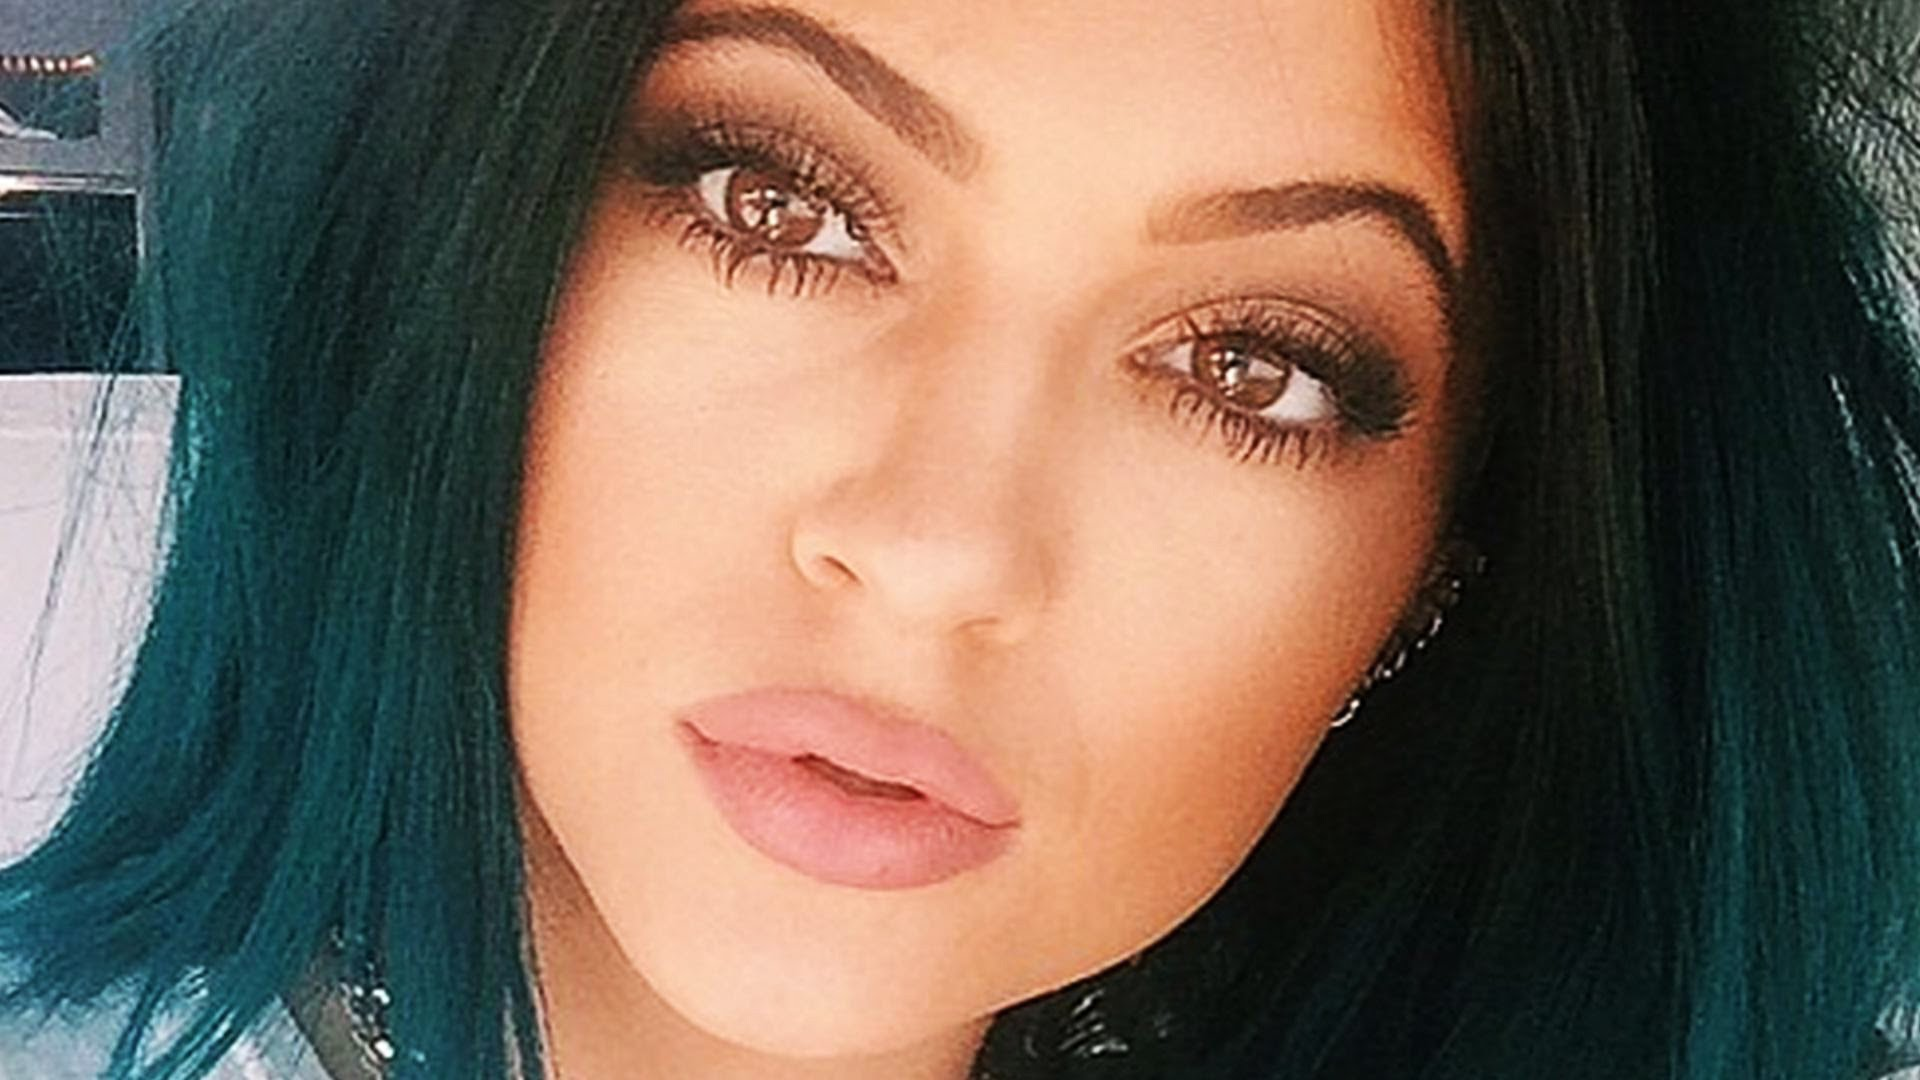 KYLIE JENNER NEW LIPS!!!! - BIEBER GETS BAPTIZED! - TRACY MORGAN ACCIDENT!